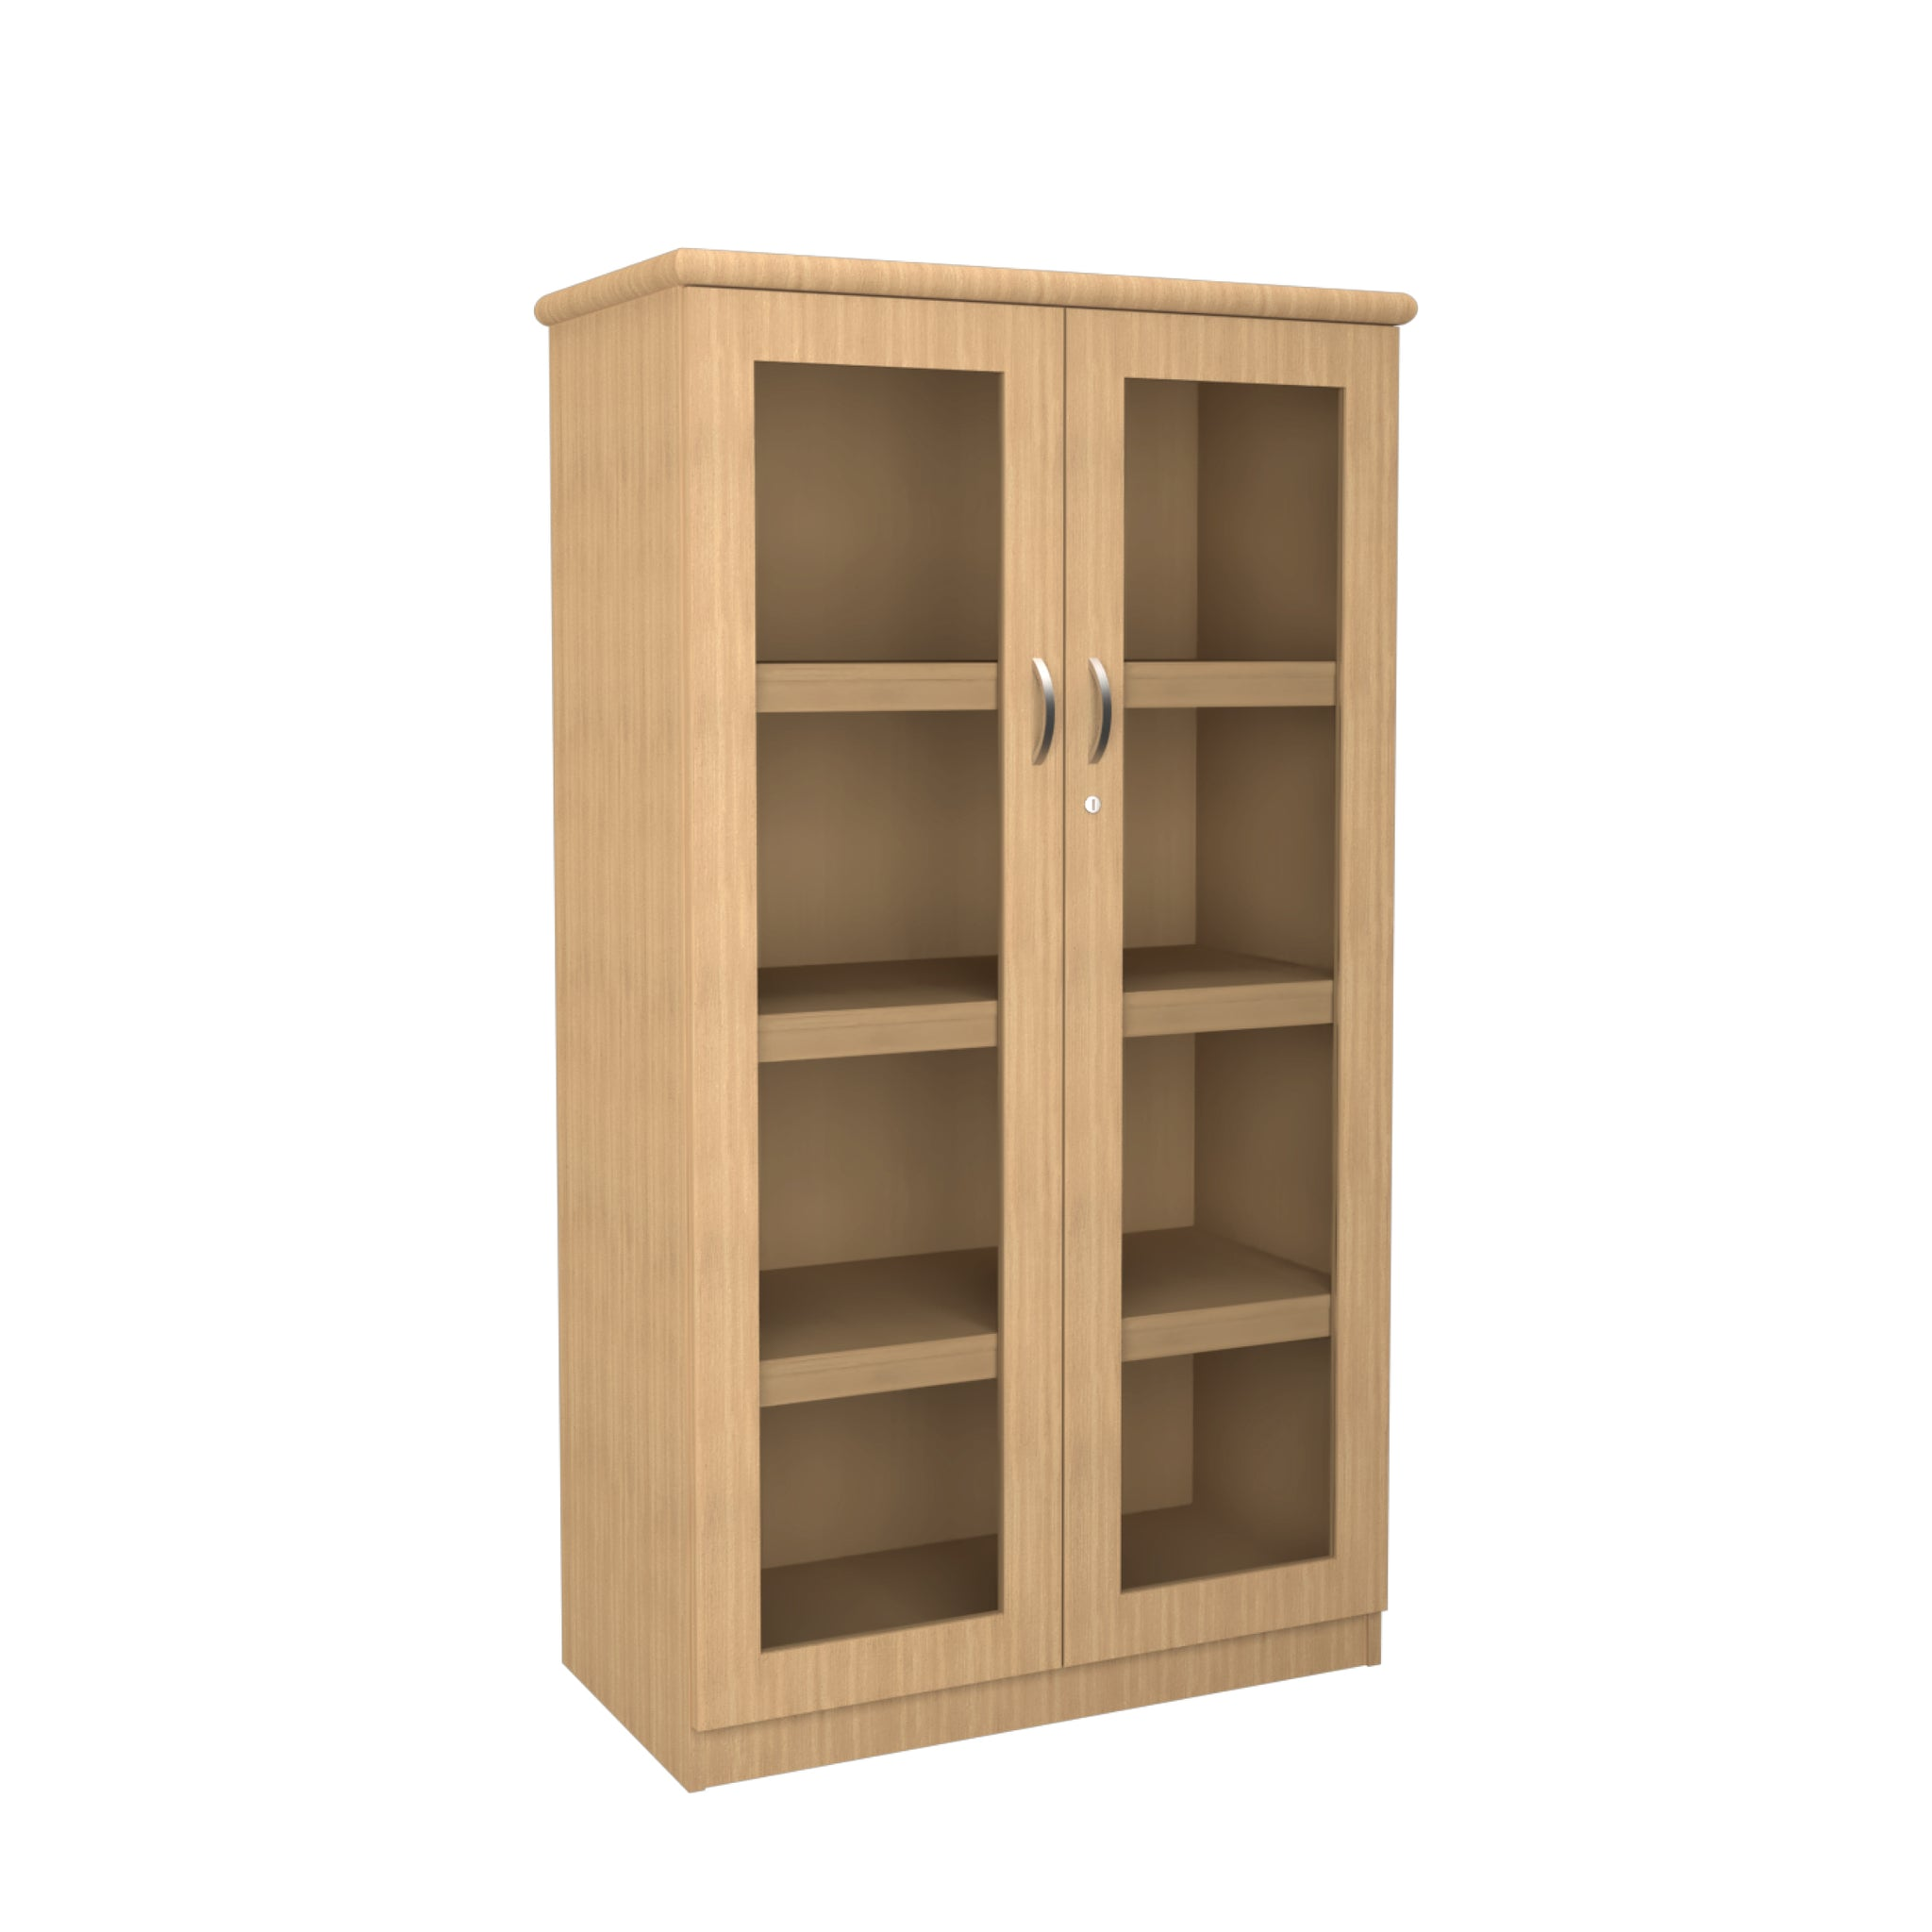 Hedcor Diamond bookcase glass inlay